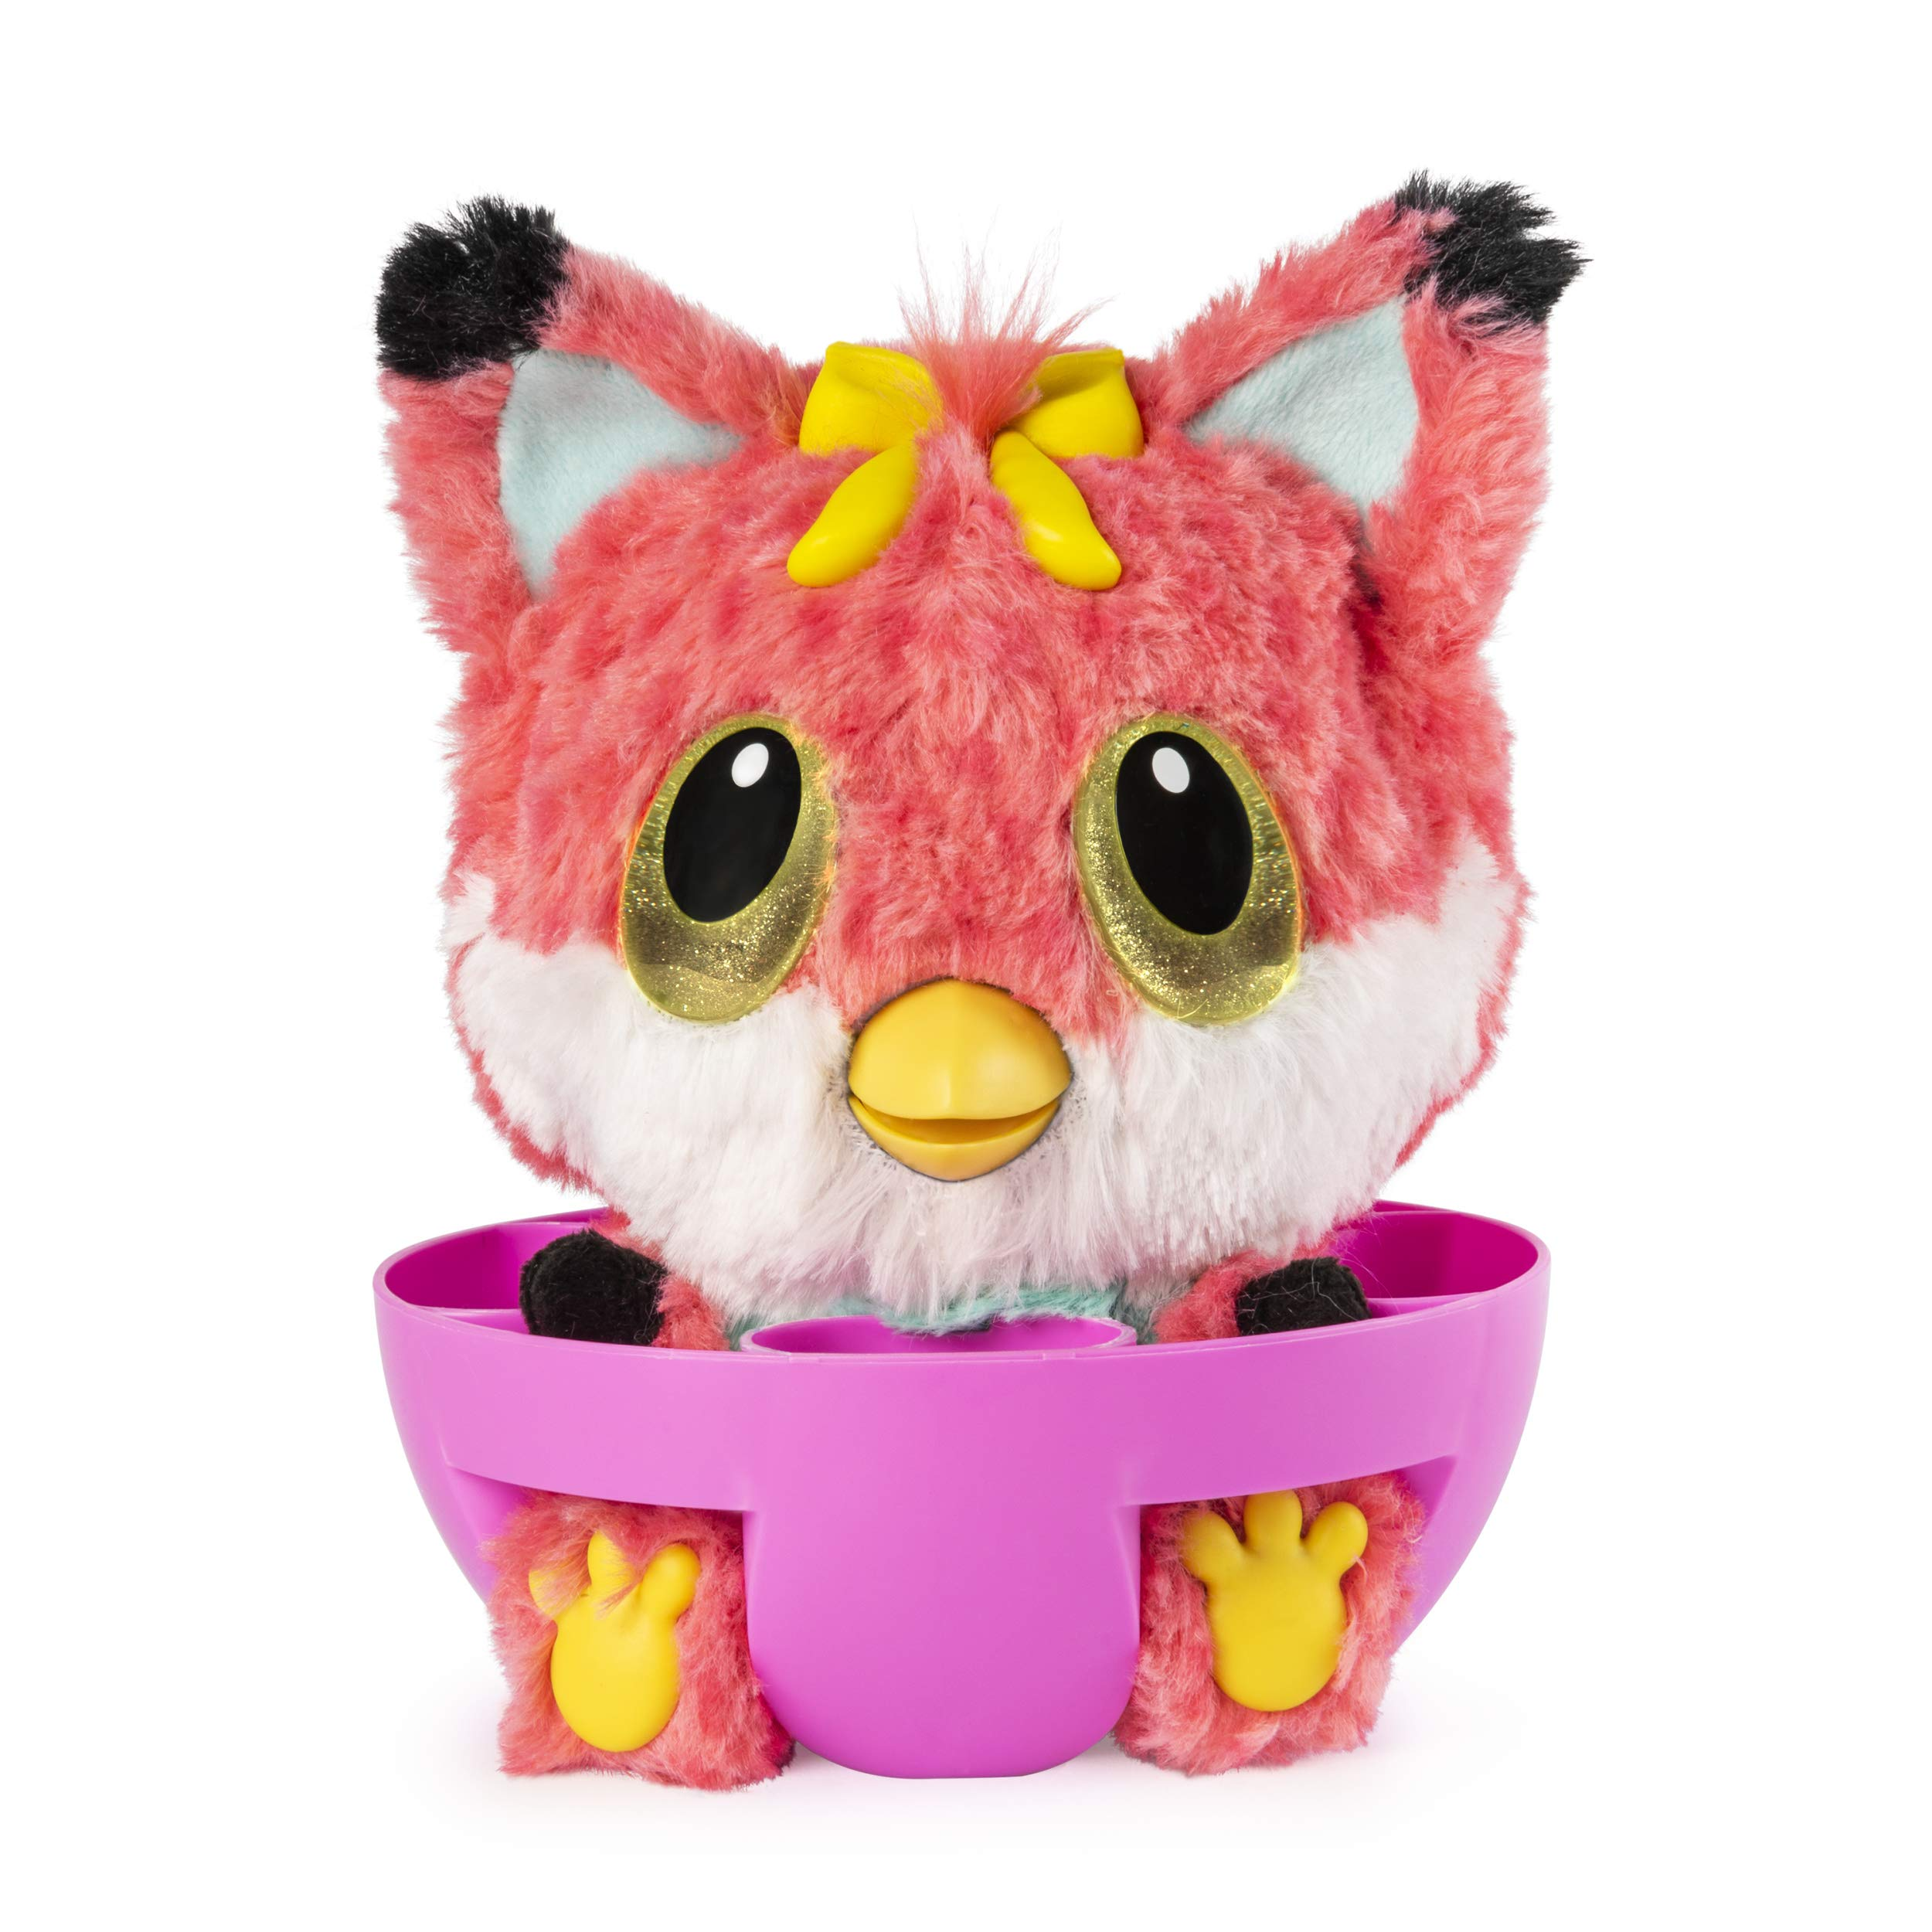 Hatchibabies FoxFin - Hatching Egg with Interactive Pet Baby (Styles May Vary) Ages 5 and Up - HOT Toy 2018 by Hatchimals (Image #4)